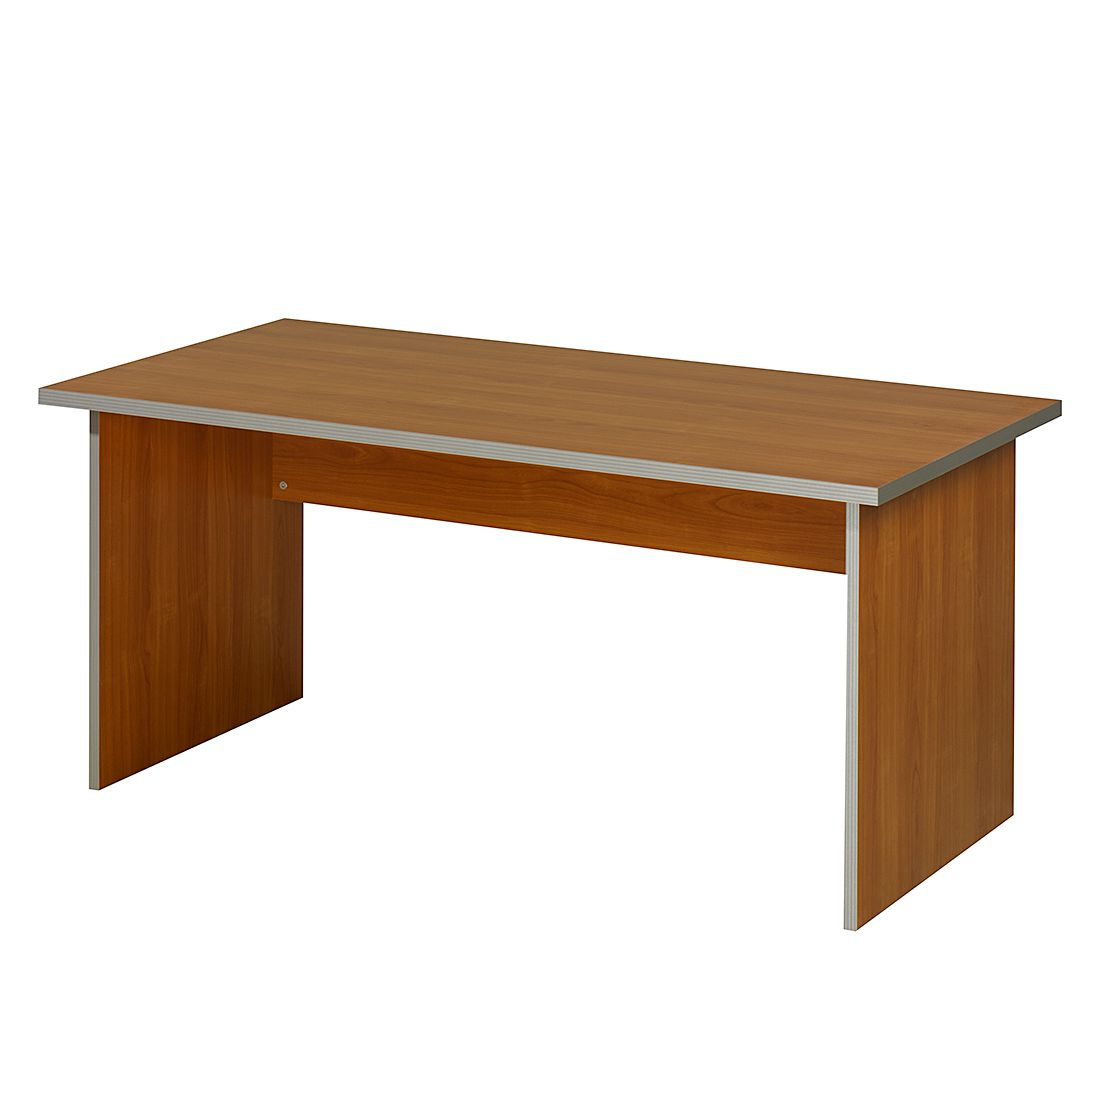 Table de bureau Kirk VII - Imitation merisier - Plateau de table : 80 x 80 cm, Wellemöbel